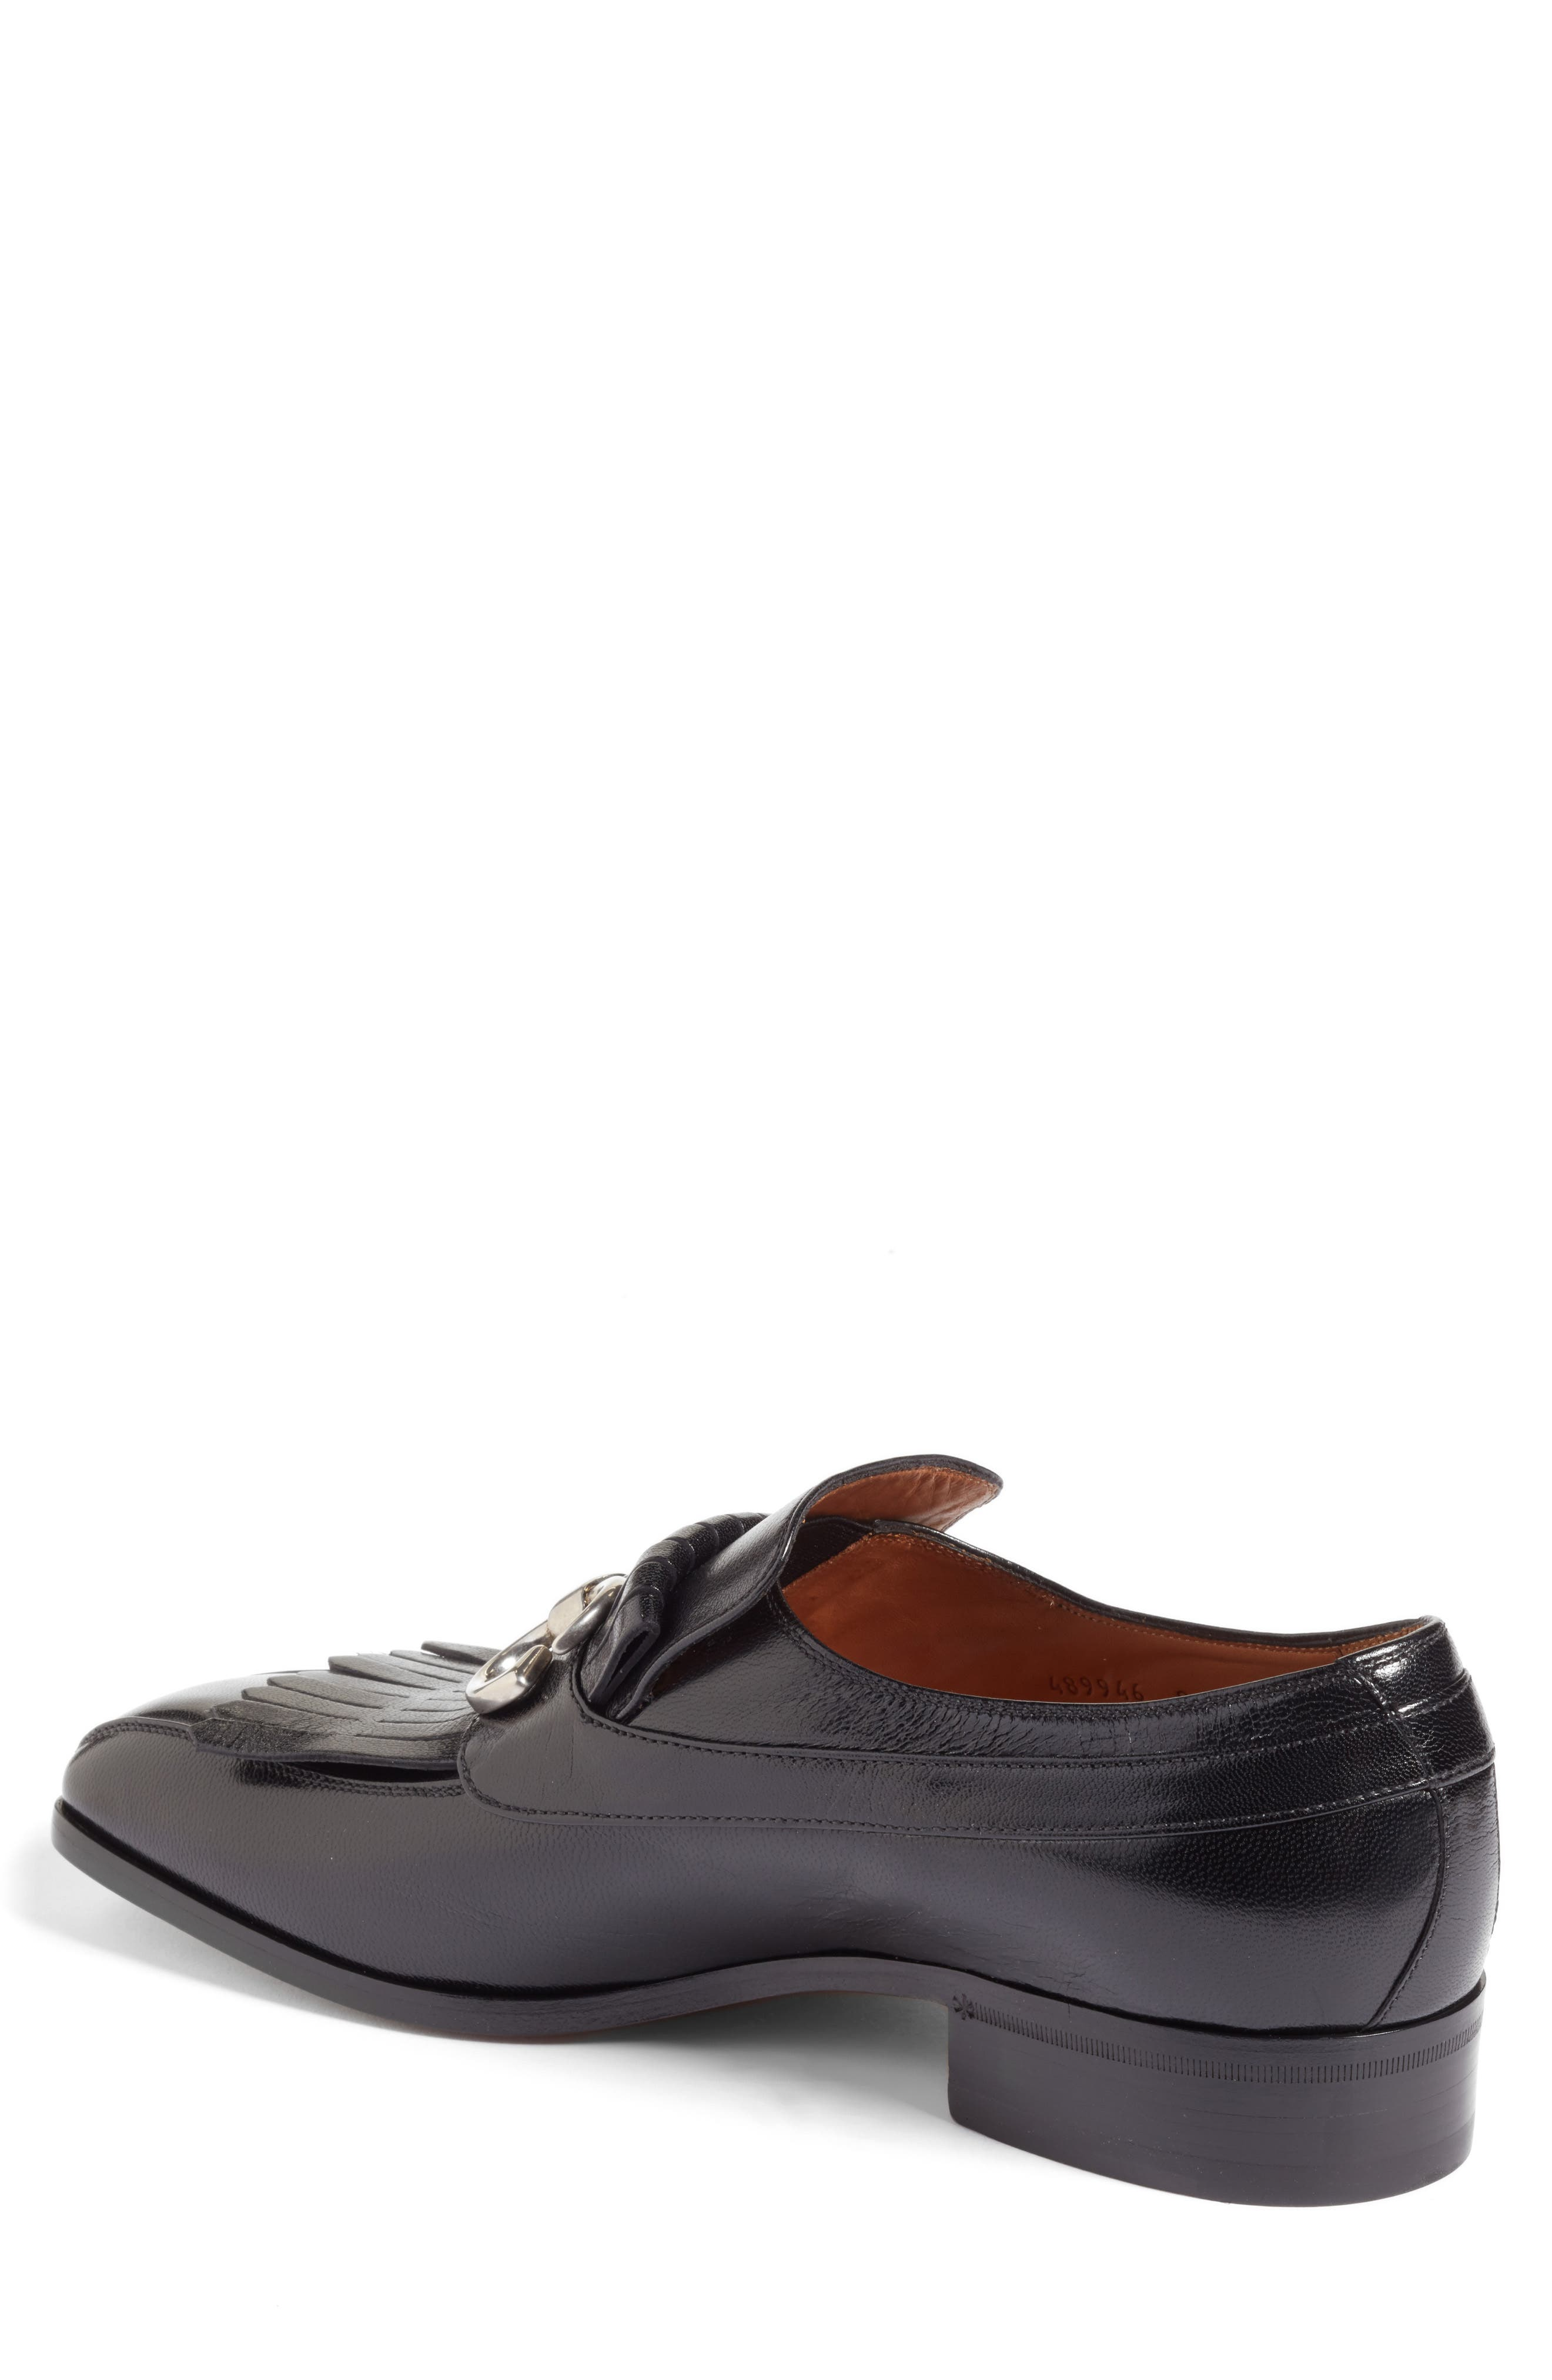 Alternate Image 2  - Gucci Novel Marmont Kiltie Loafer (Men)